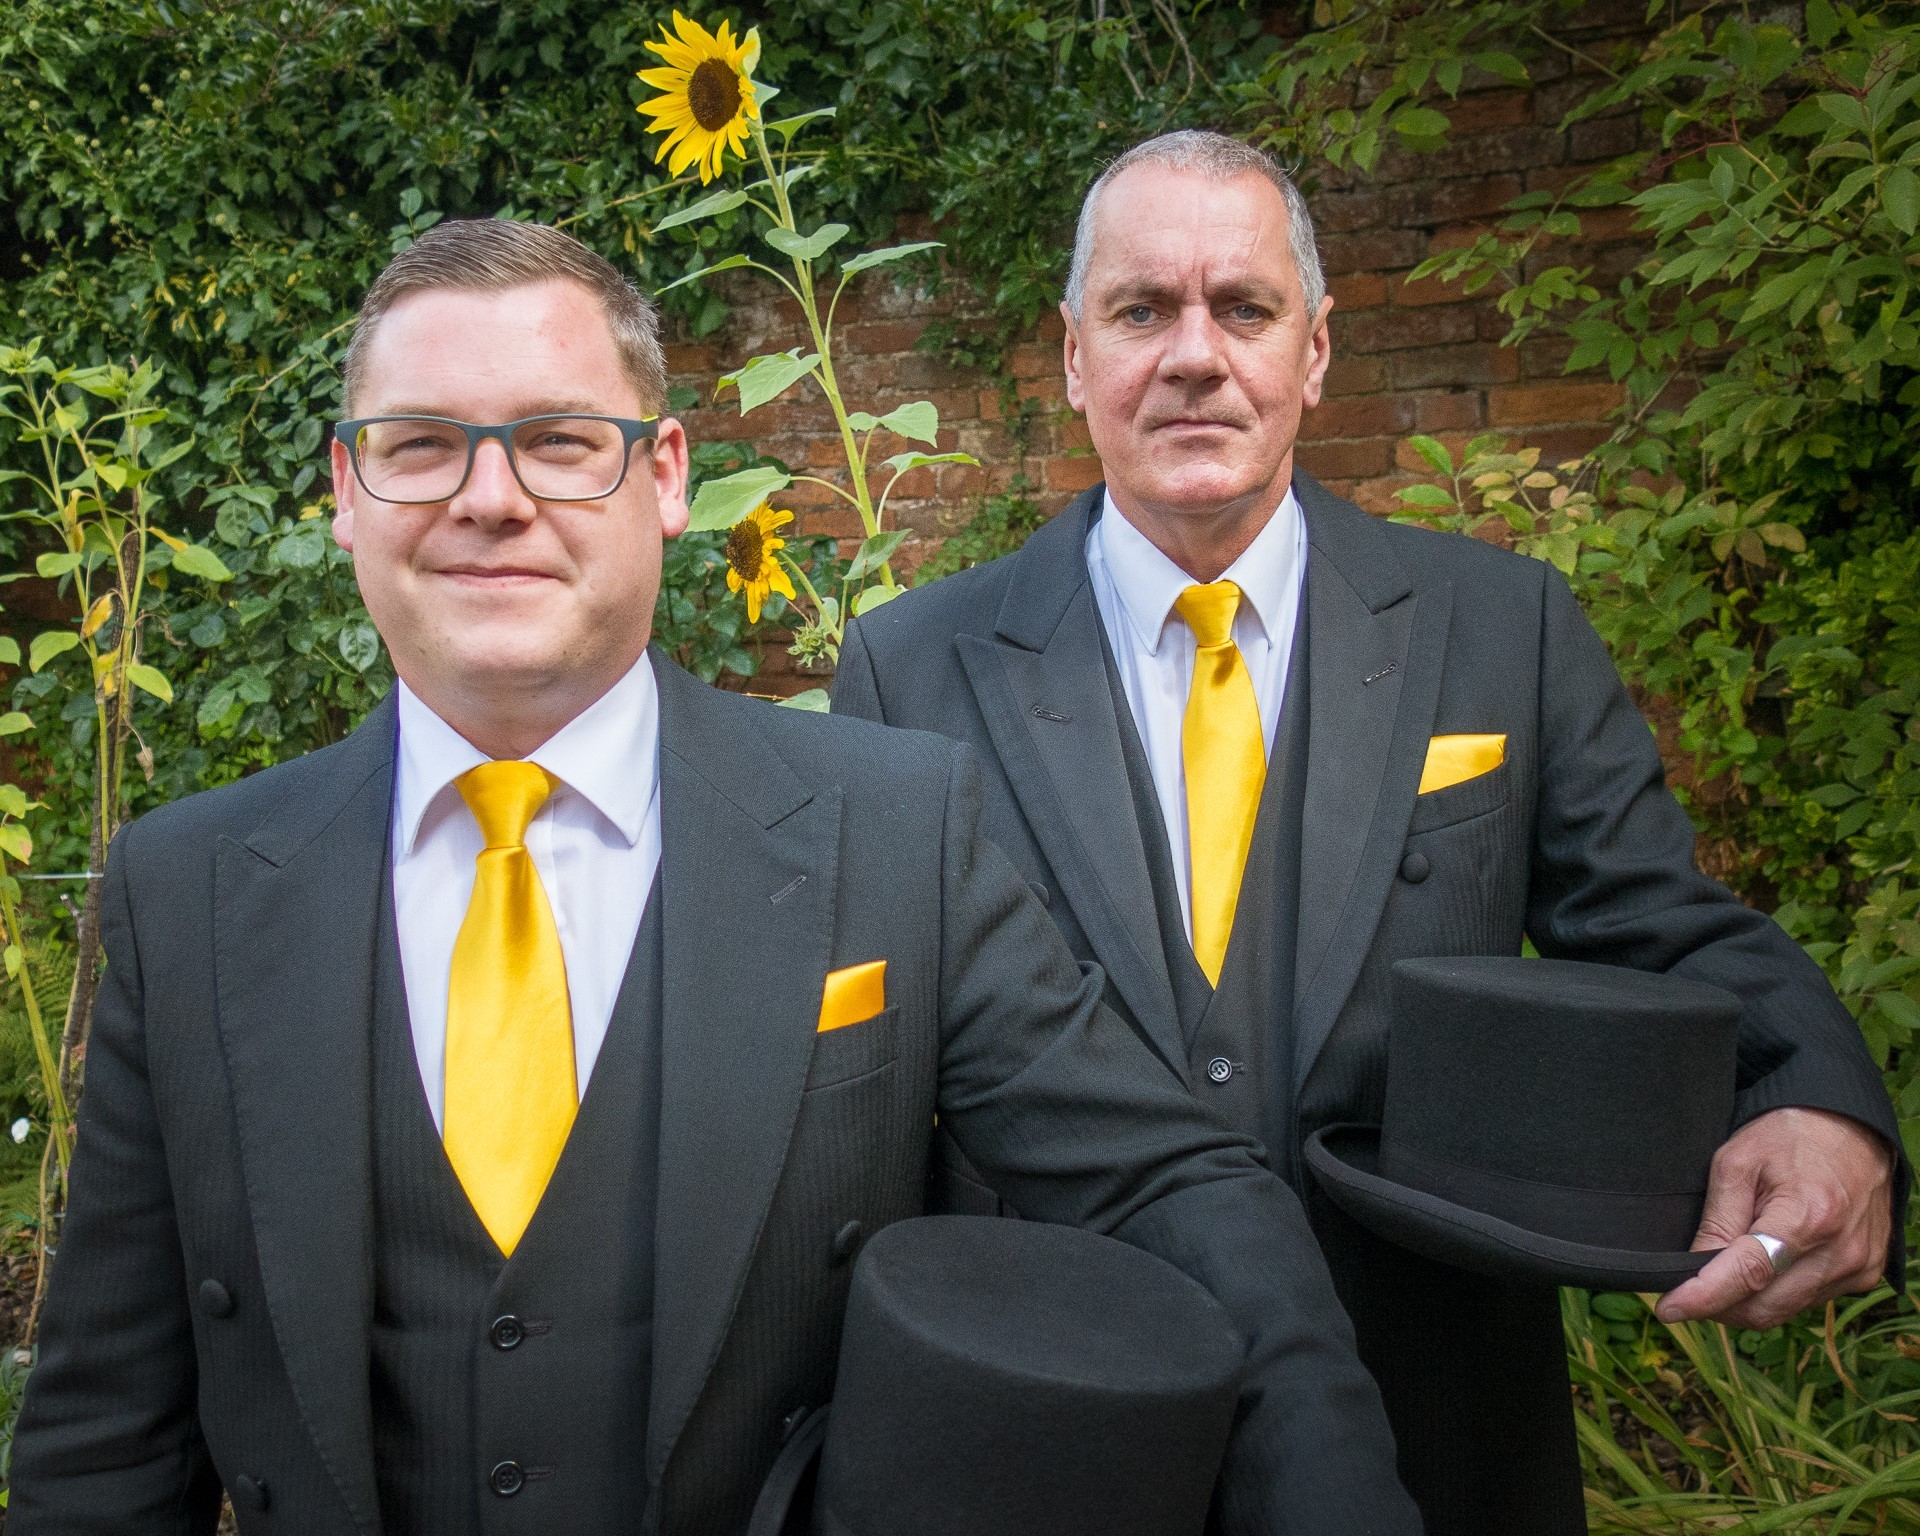 FUNERALS: Matthew and Mark from Jackson Family Funerals